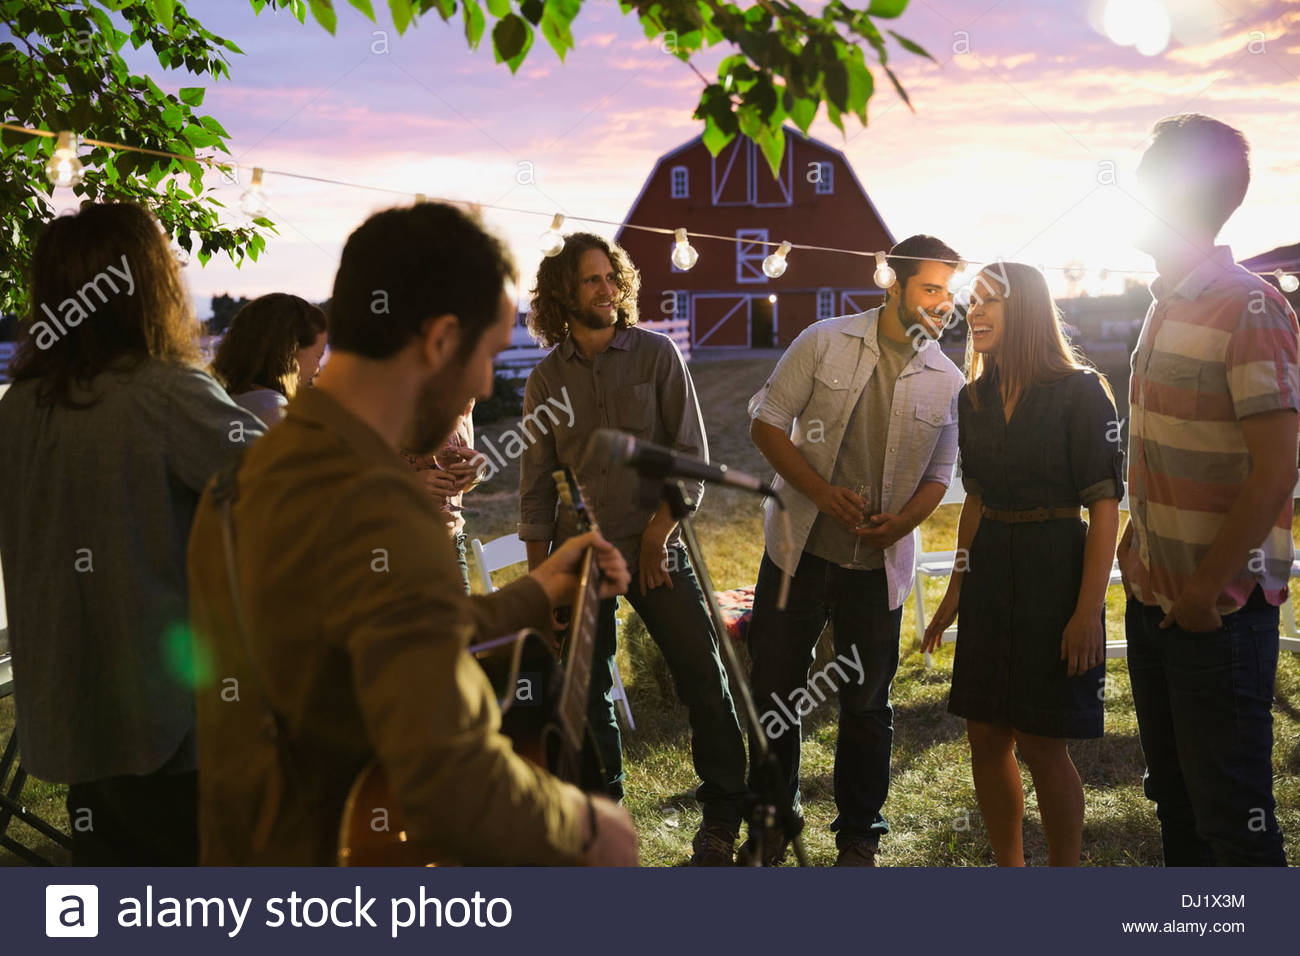 Friends watching band play at outdoor farm party - Stock Image